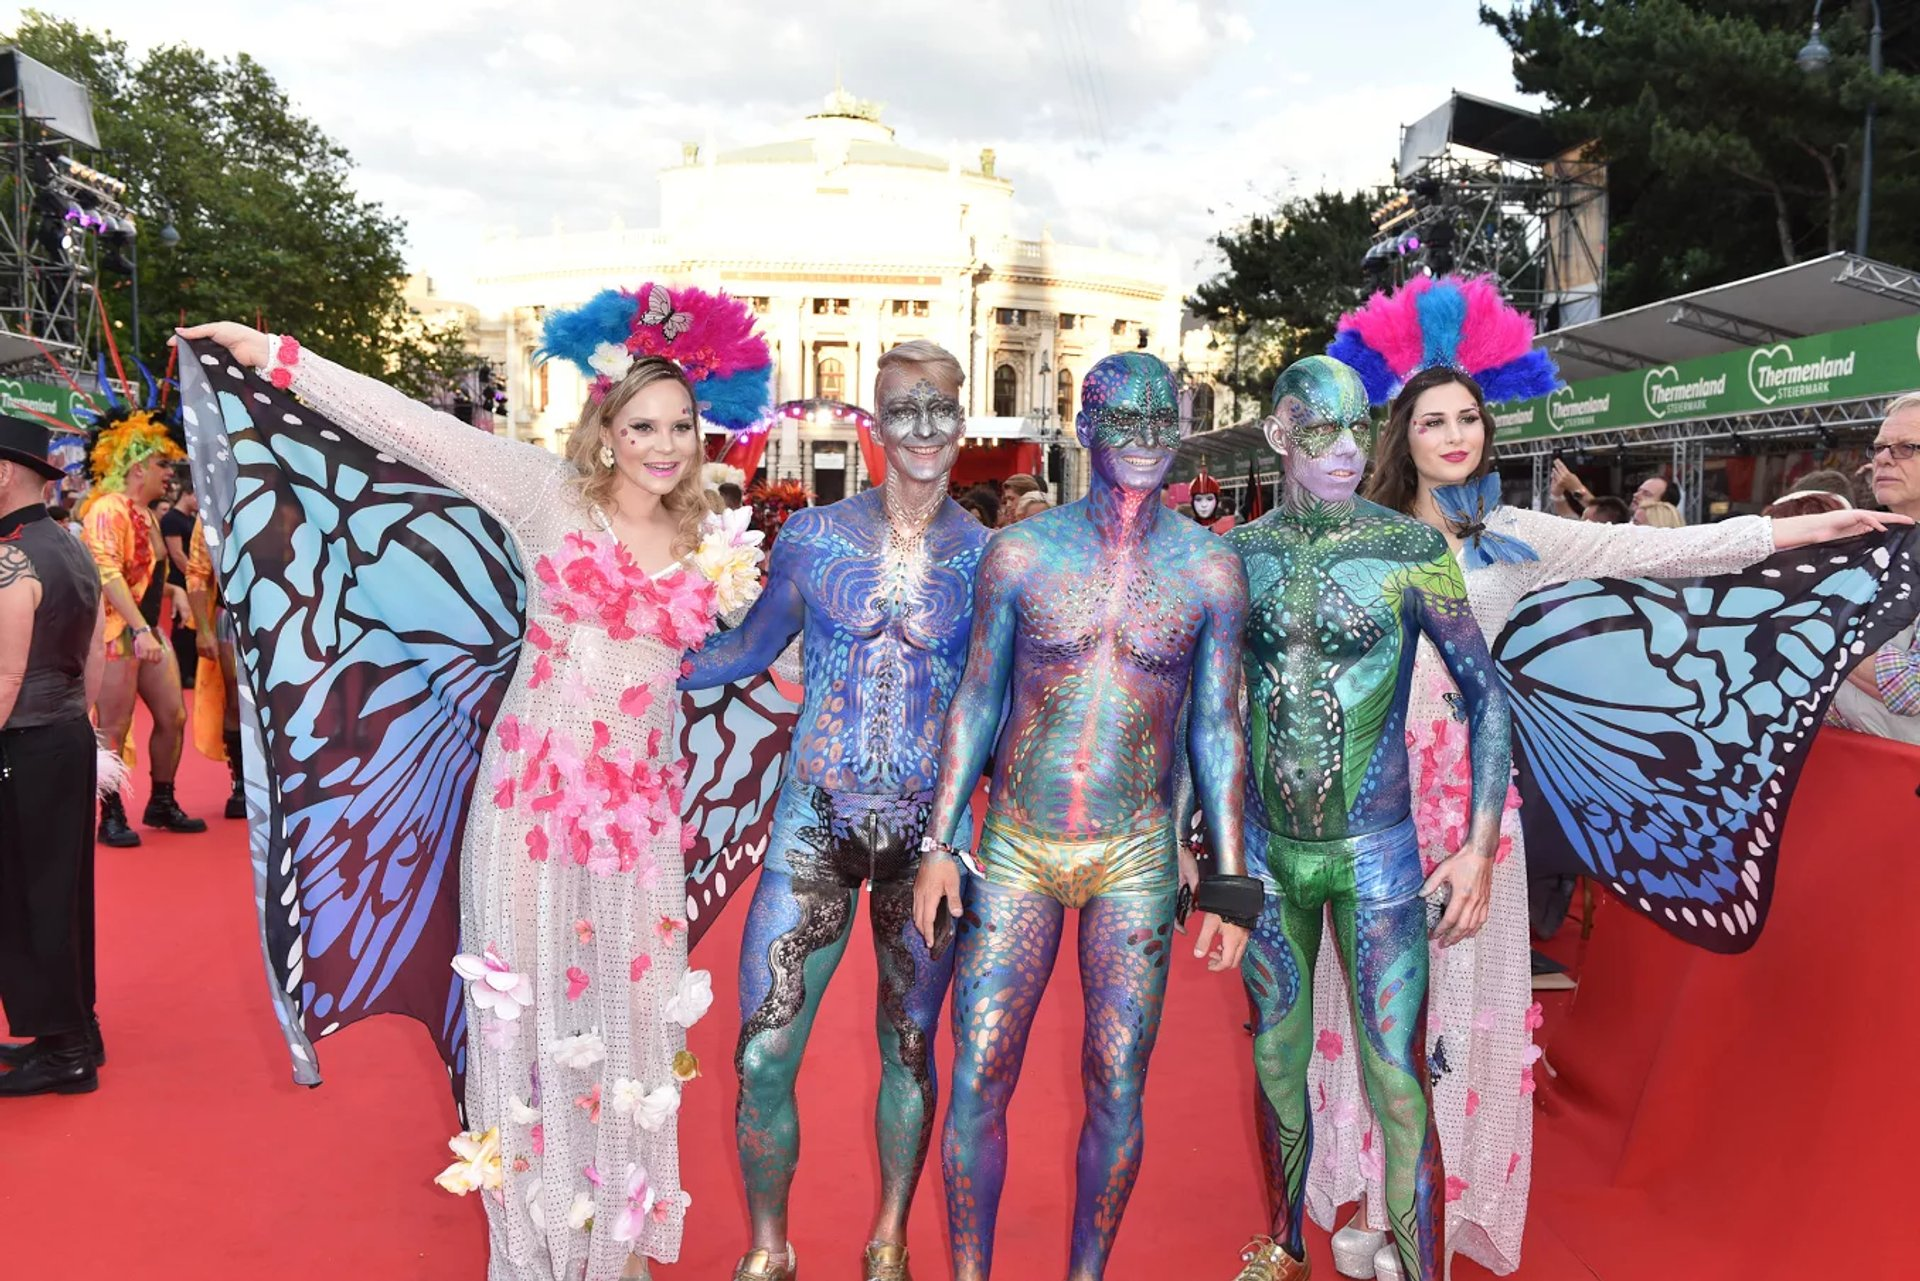 Life Ball in Vienna - Best Season 2020